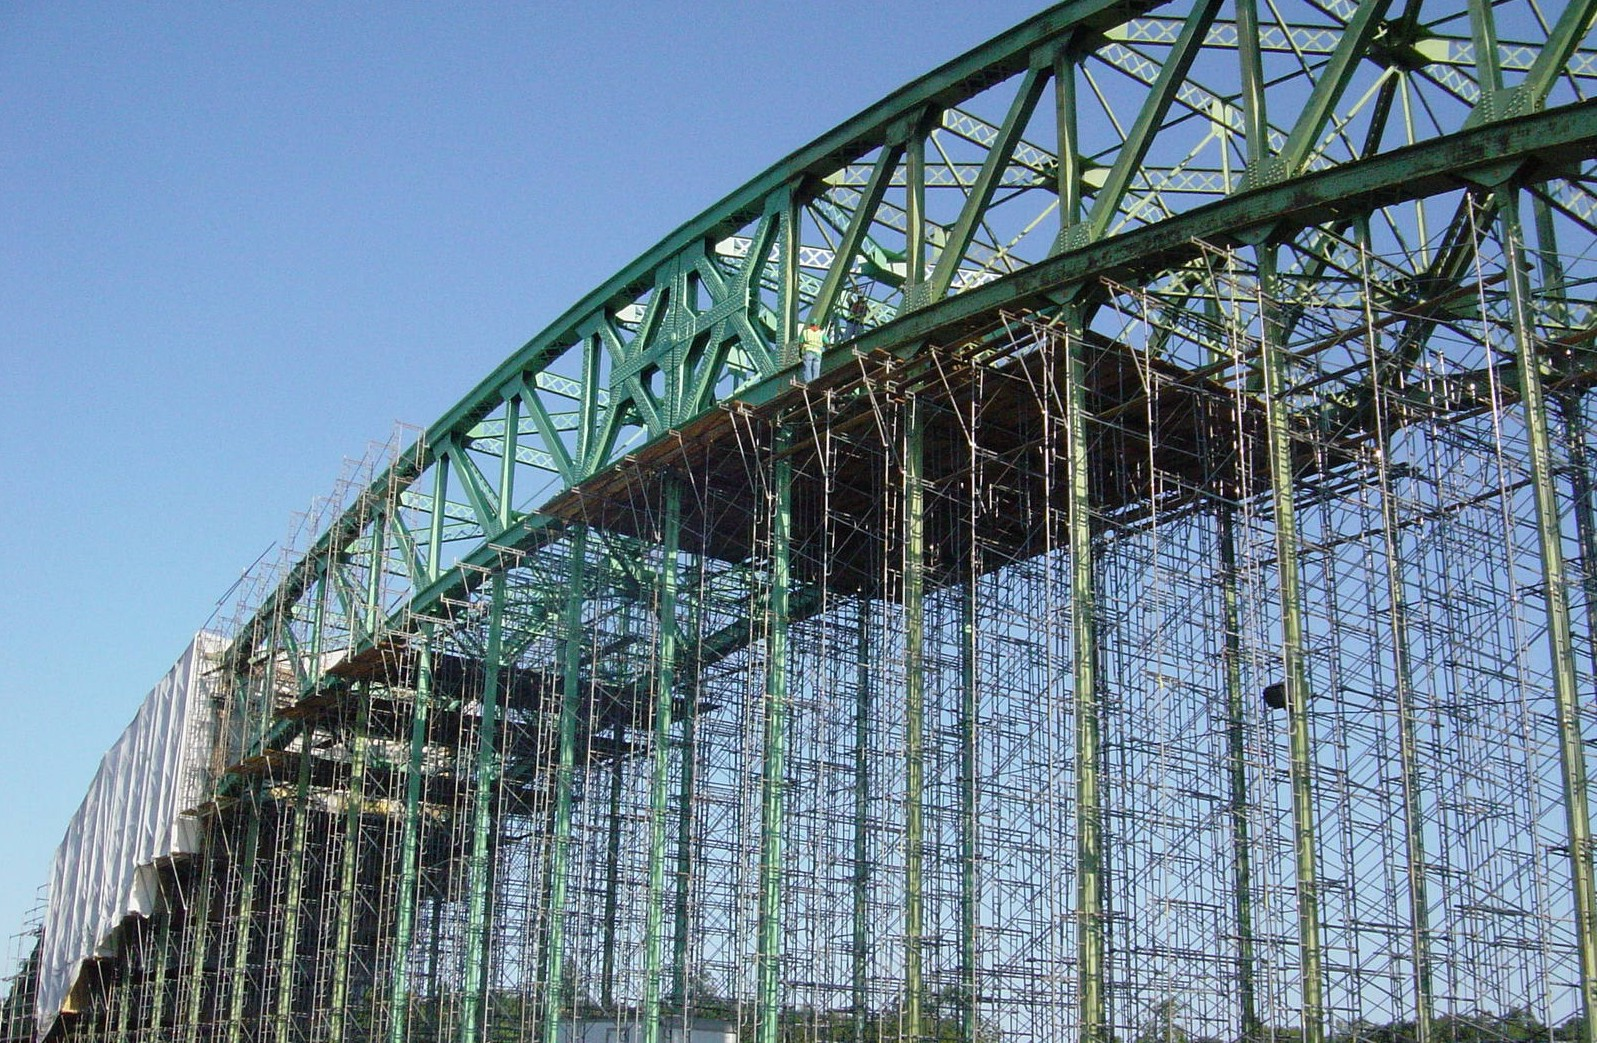 Tyngsboro Bridge